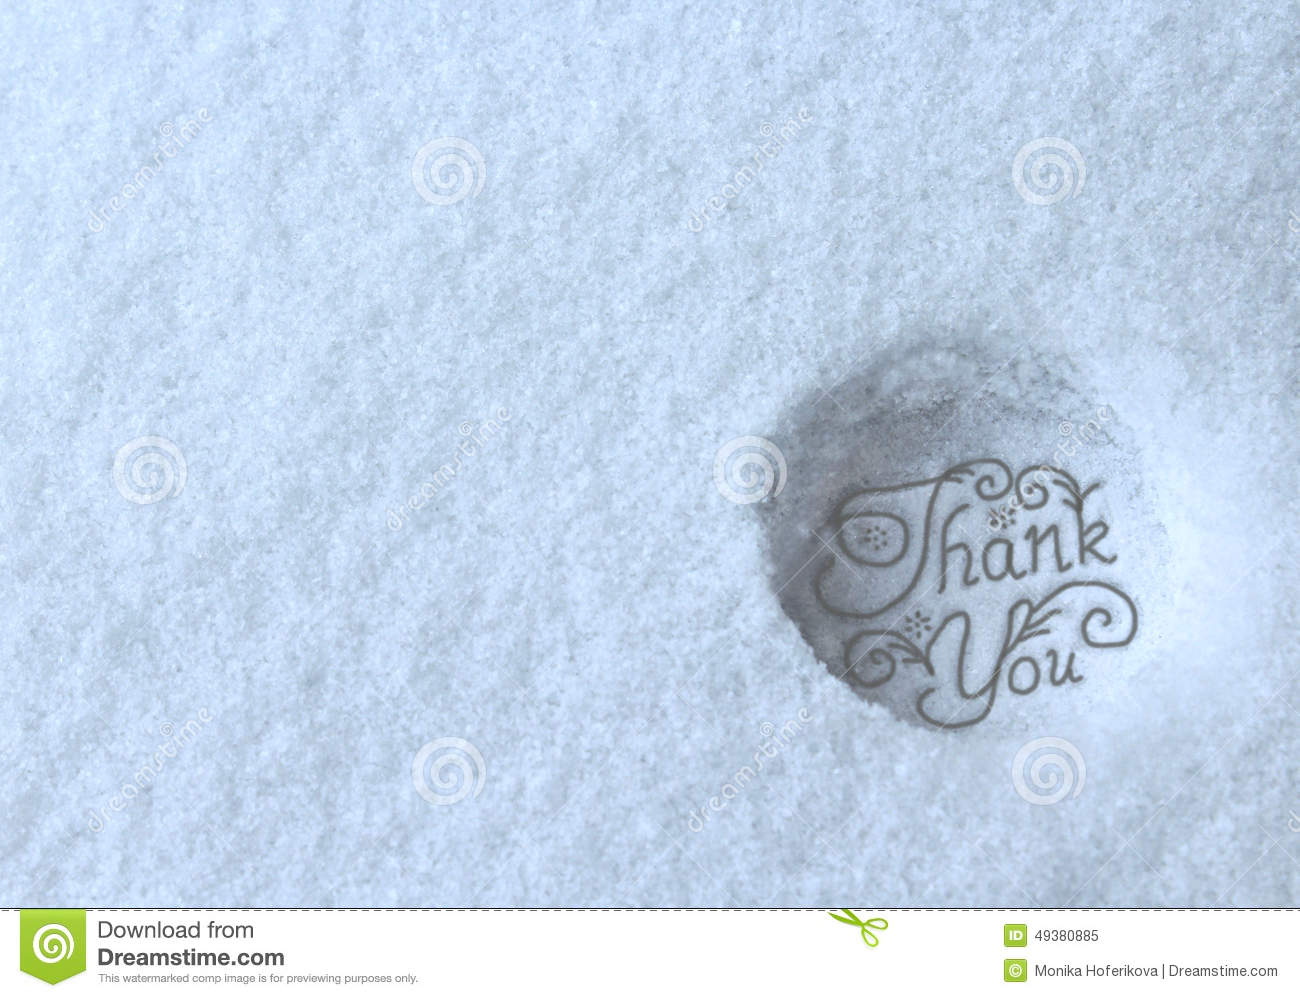 Thank You Stamped In Snow Stock Illustration Image 49380885